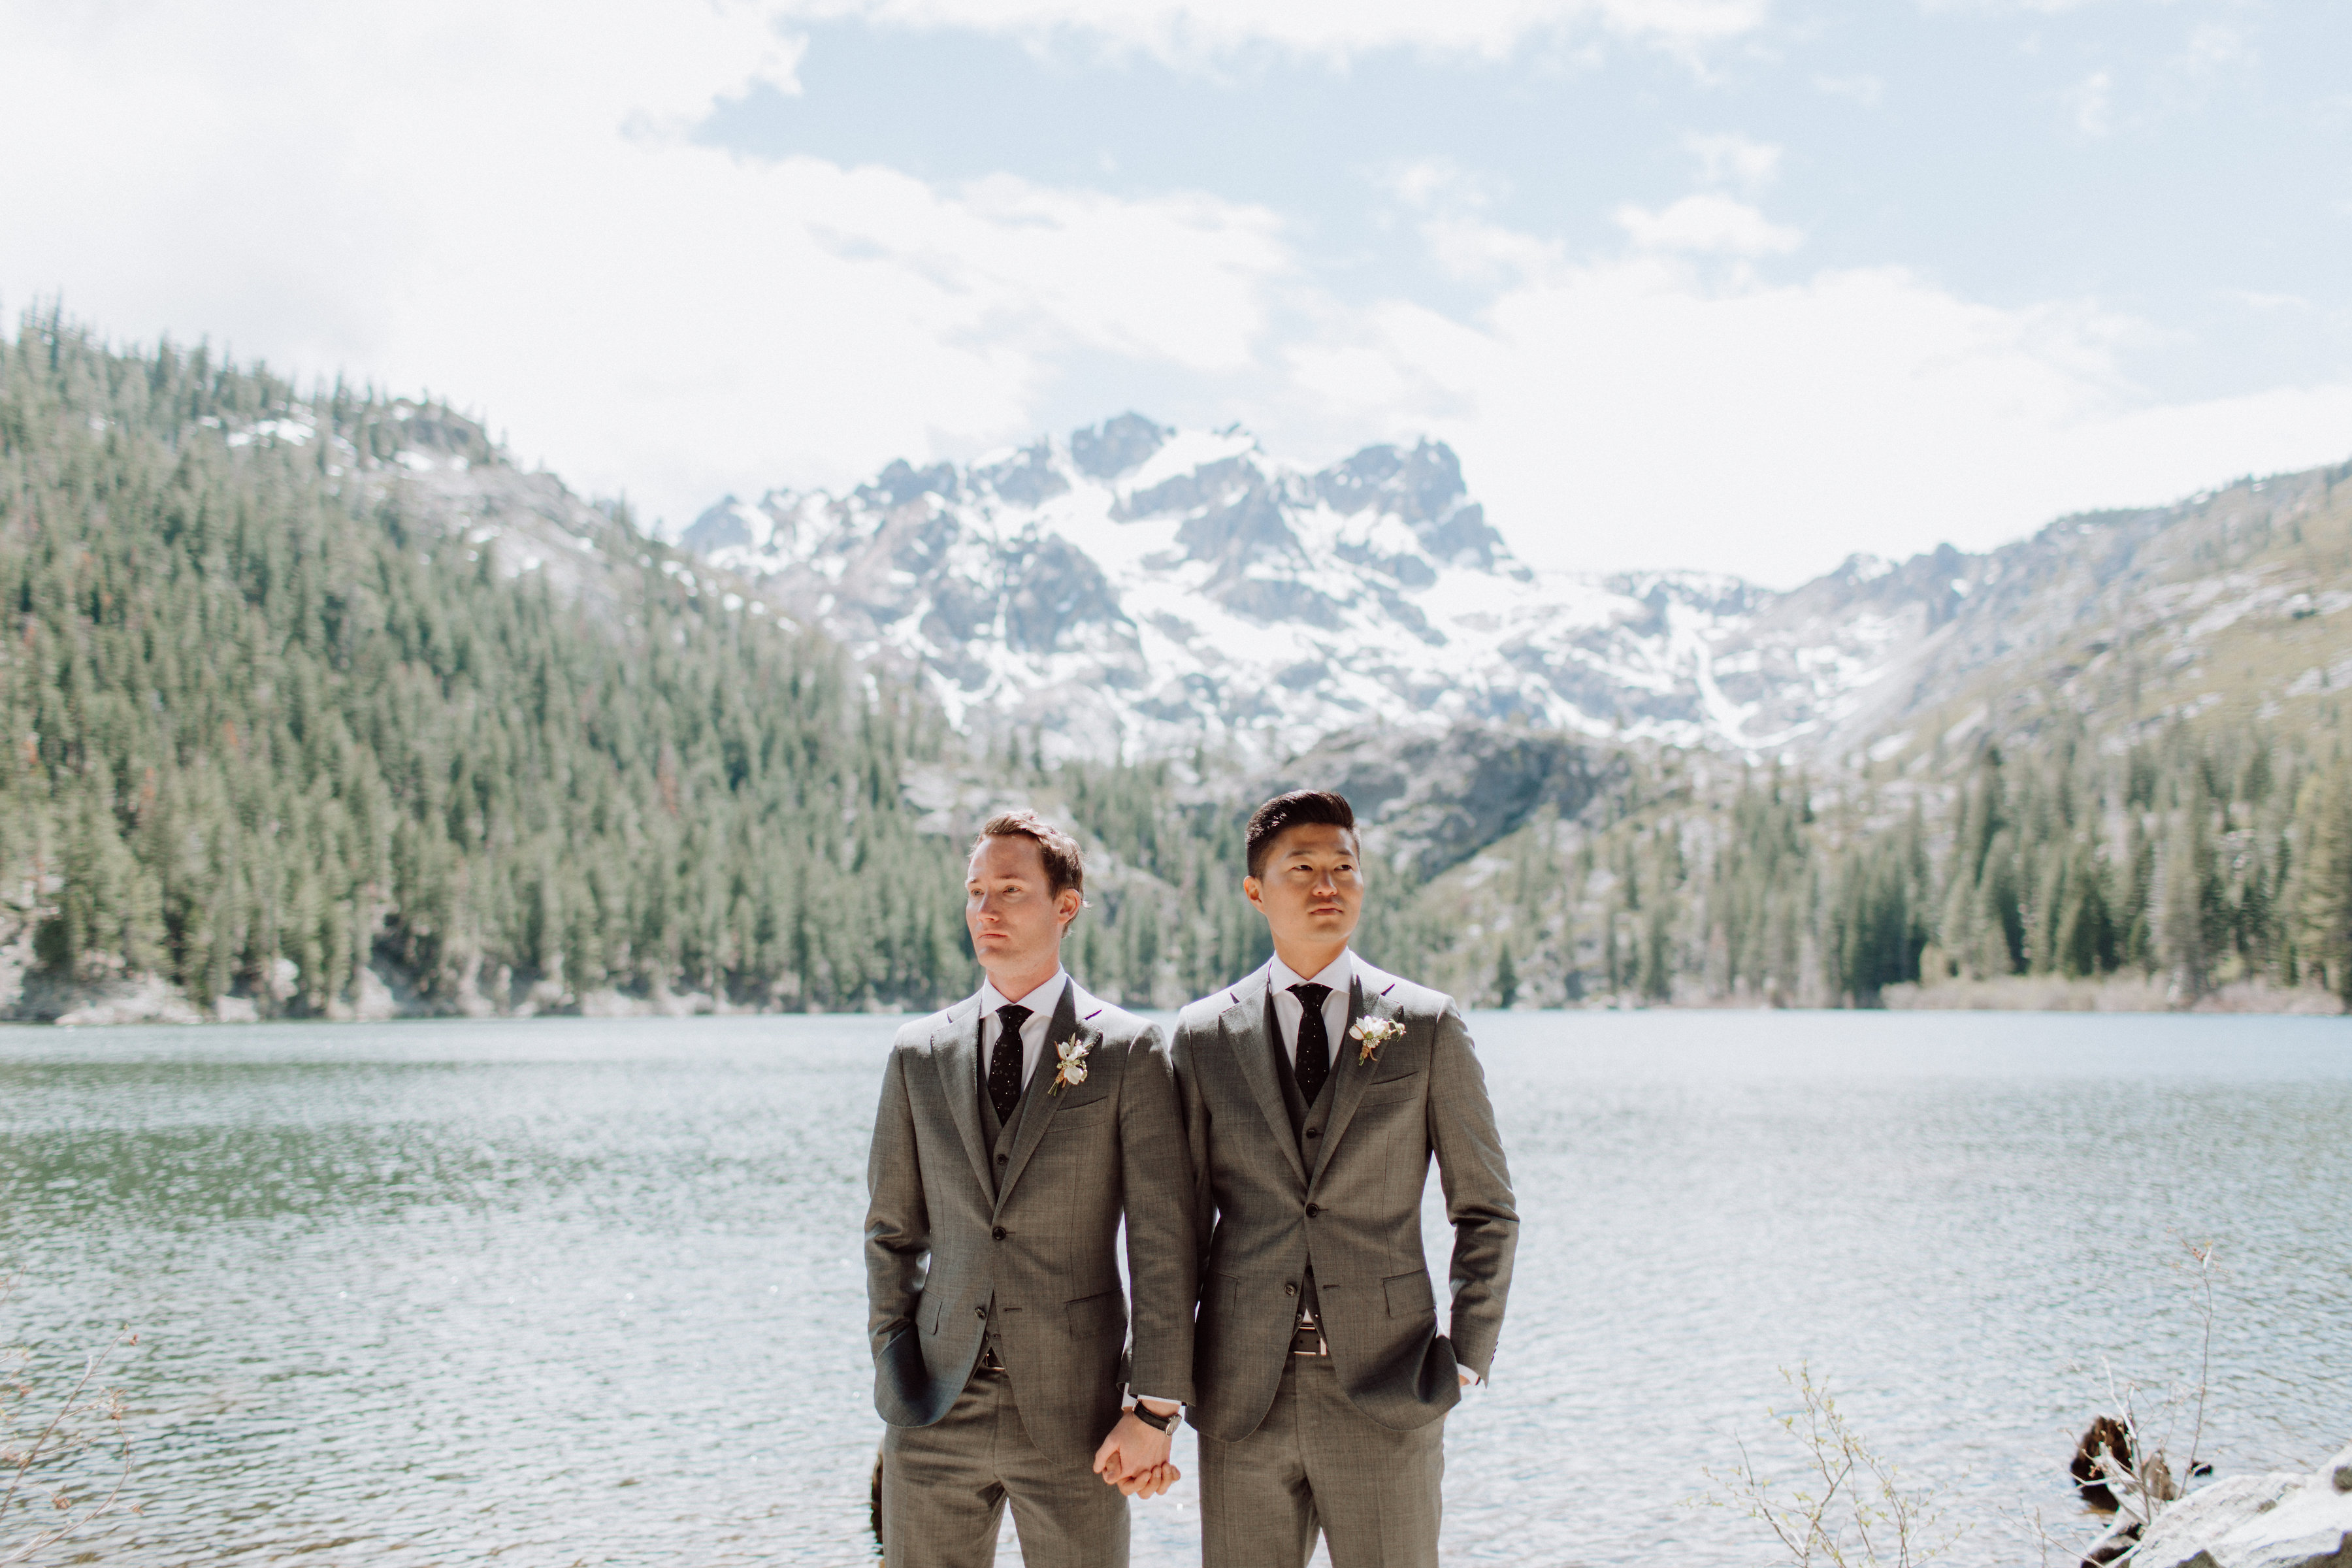 grooms holding hands in front of lake and mountains